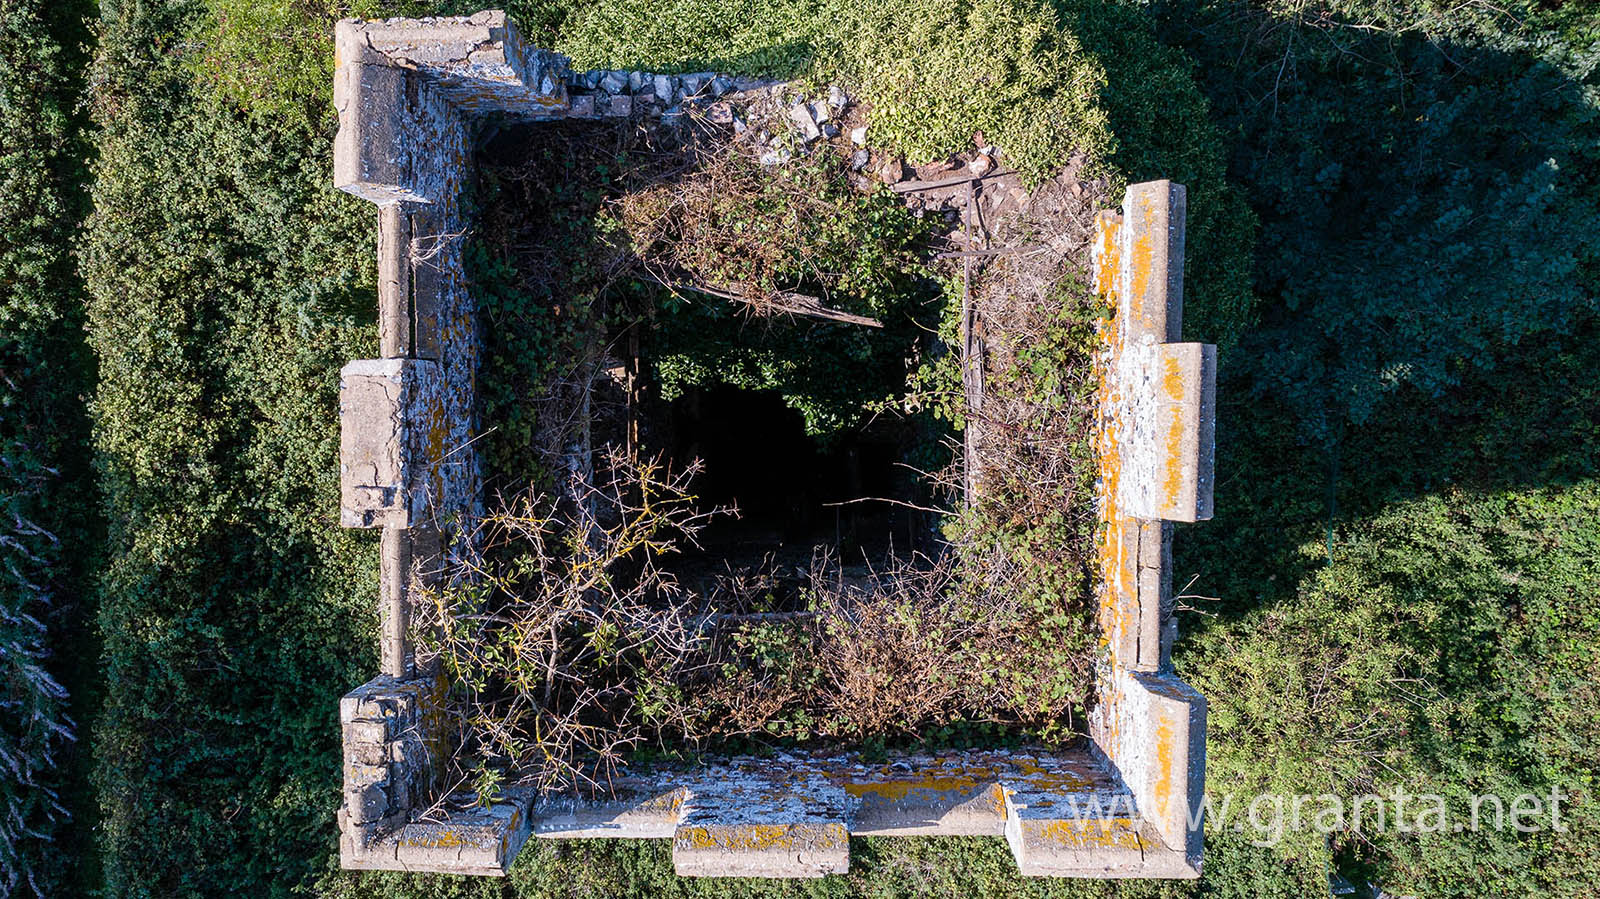 Derelict church tower, seen from above